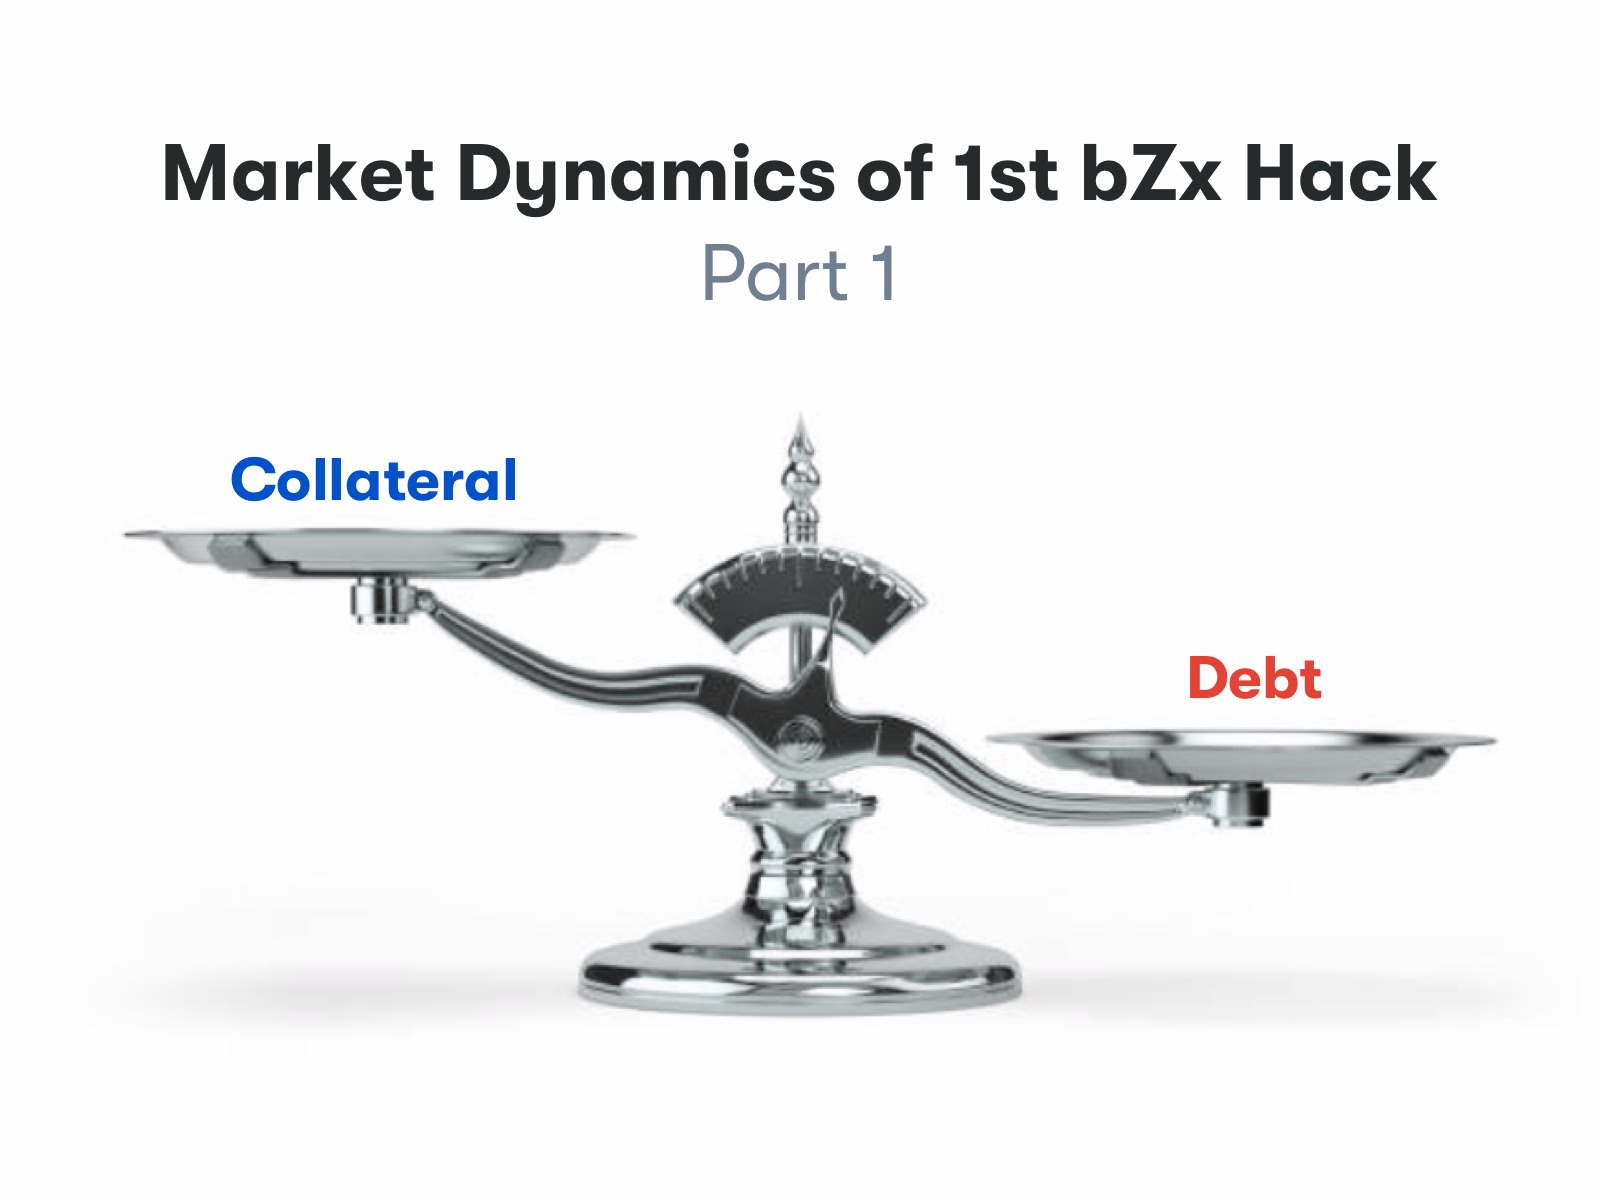 Market Dynamics of the 1st bZx Hack: Flash Loans and the Insolvent Loan